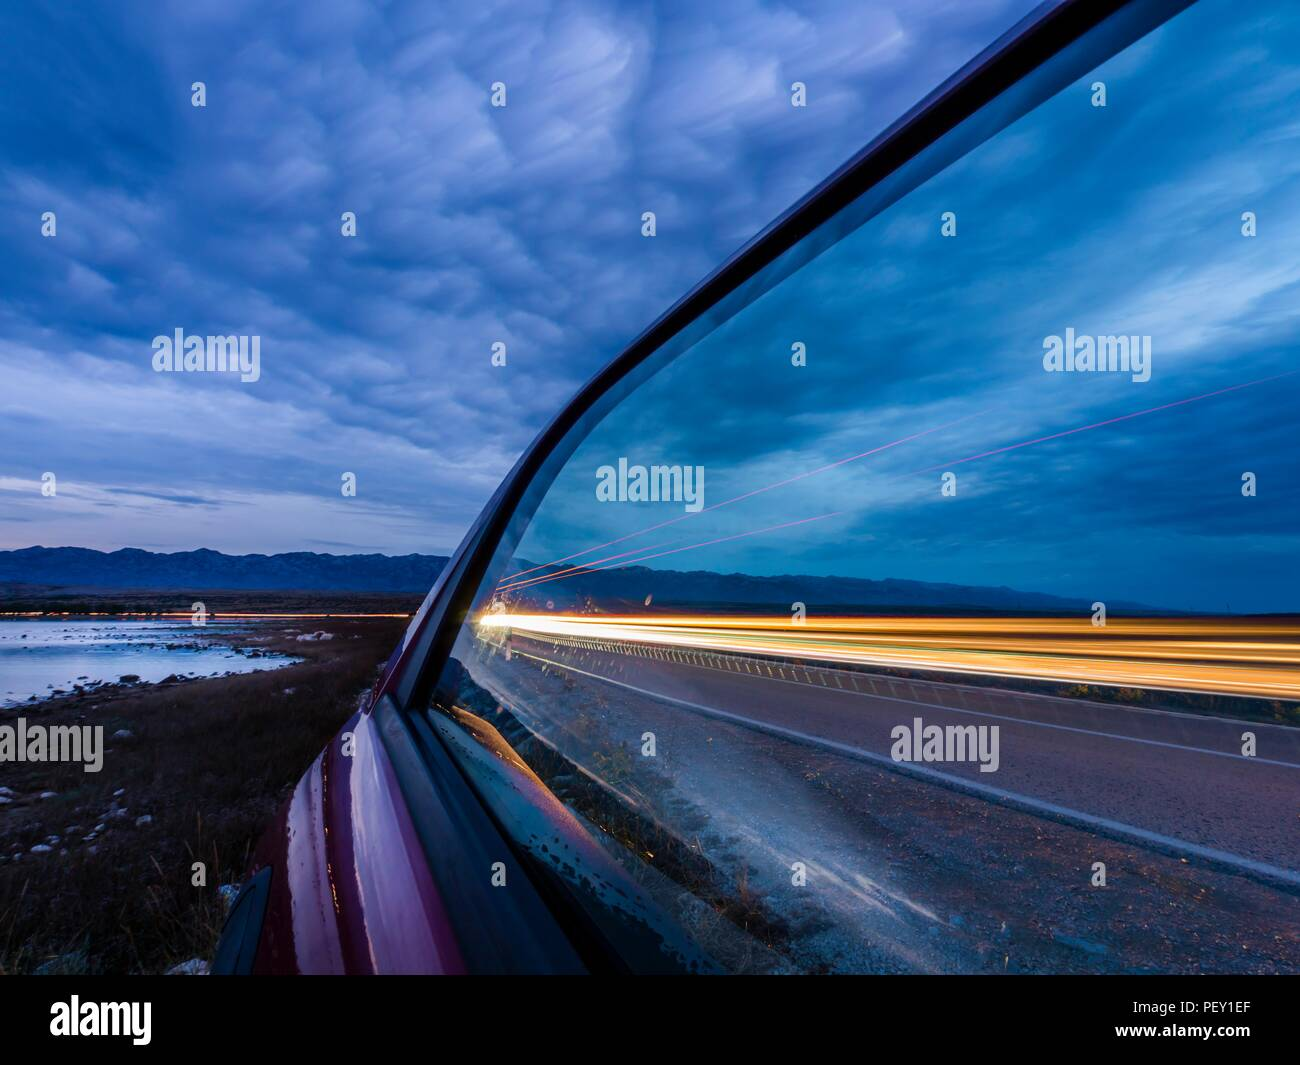 Cars vehicles trails trailing lights reflected off side window in dusk - Stock Image